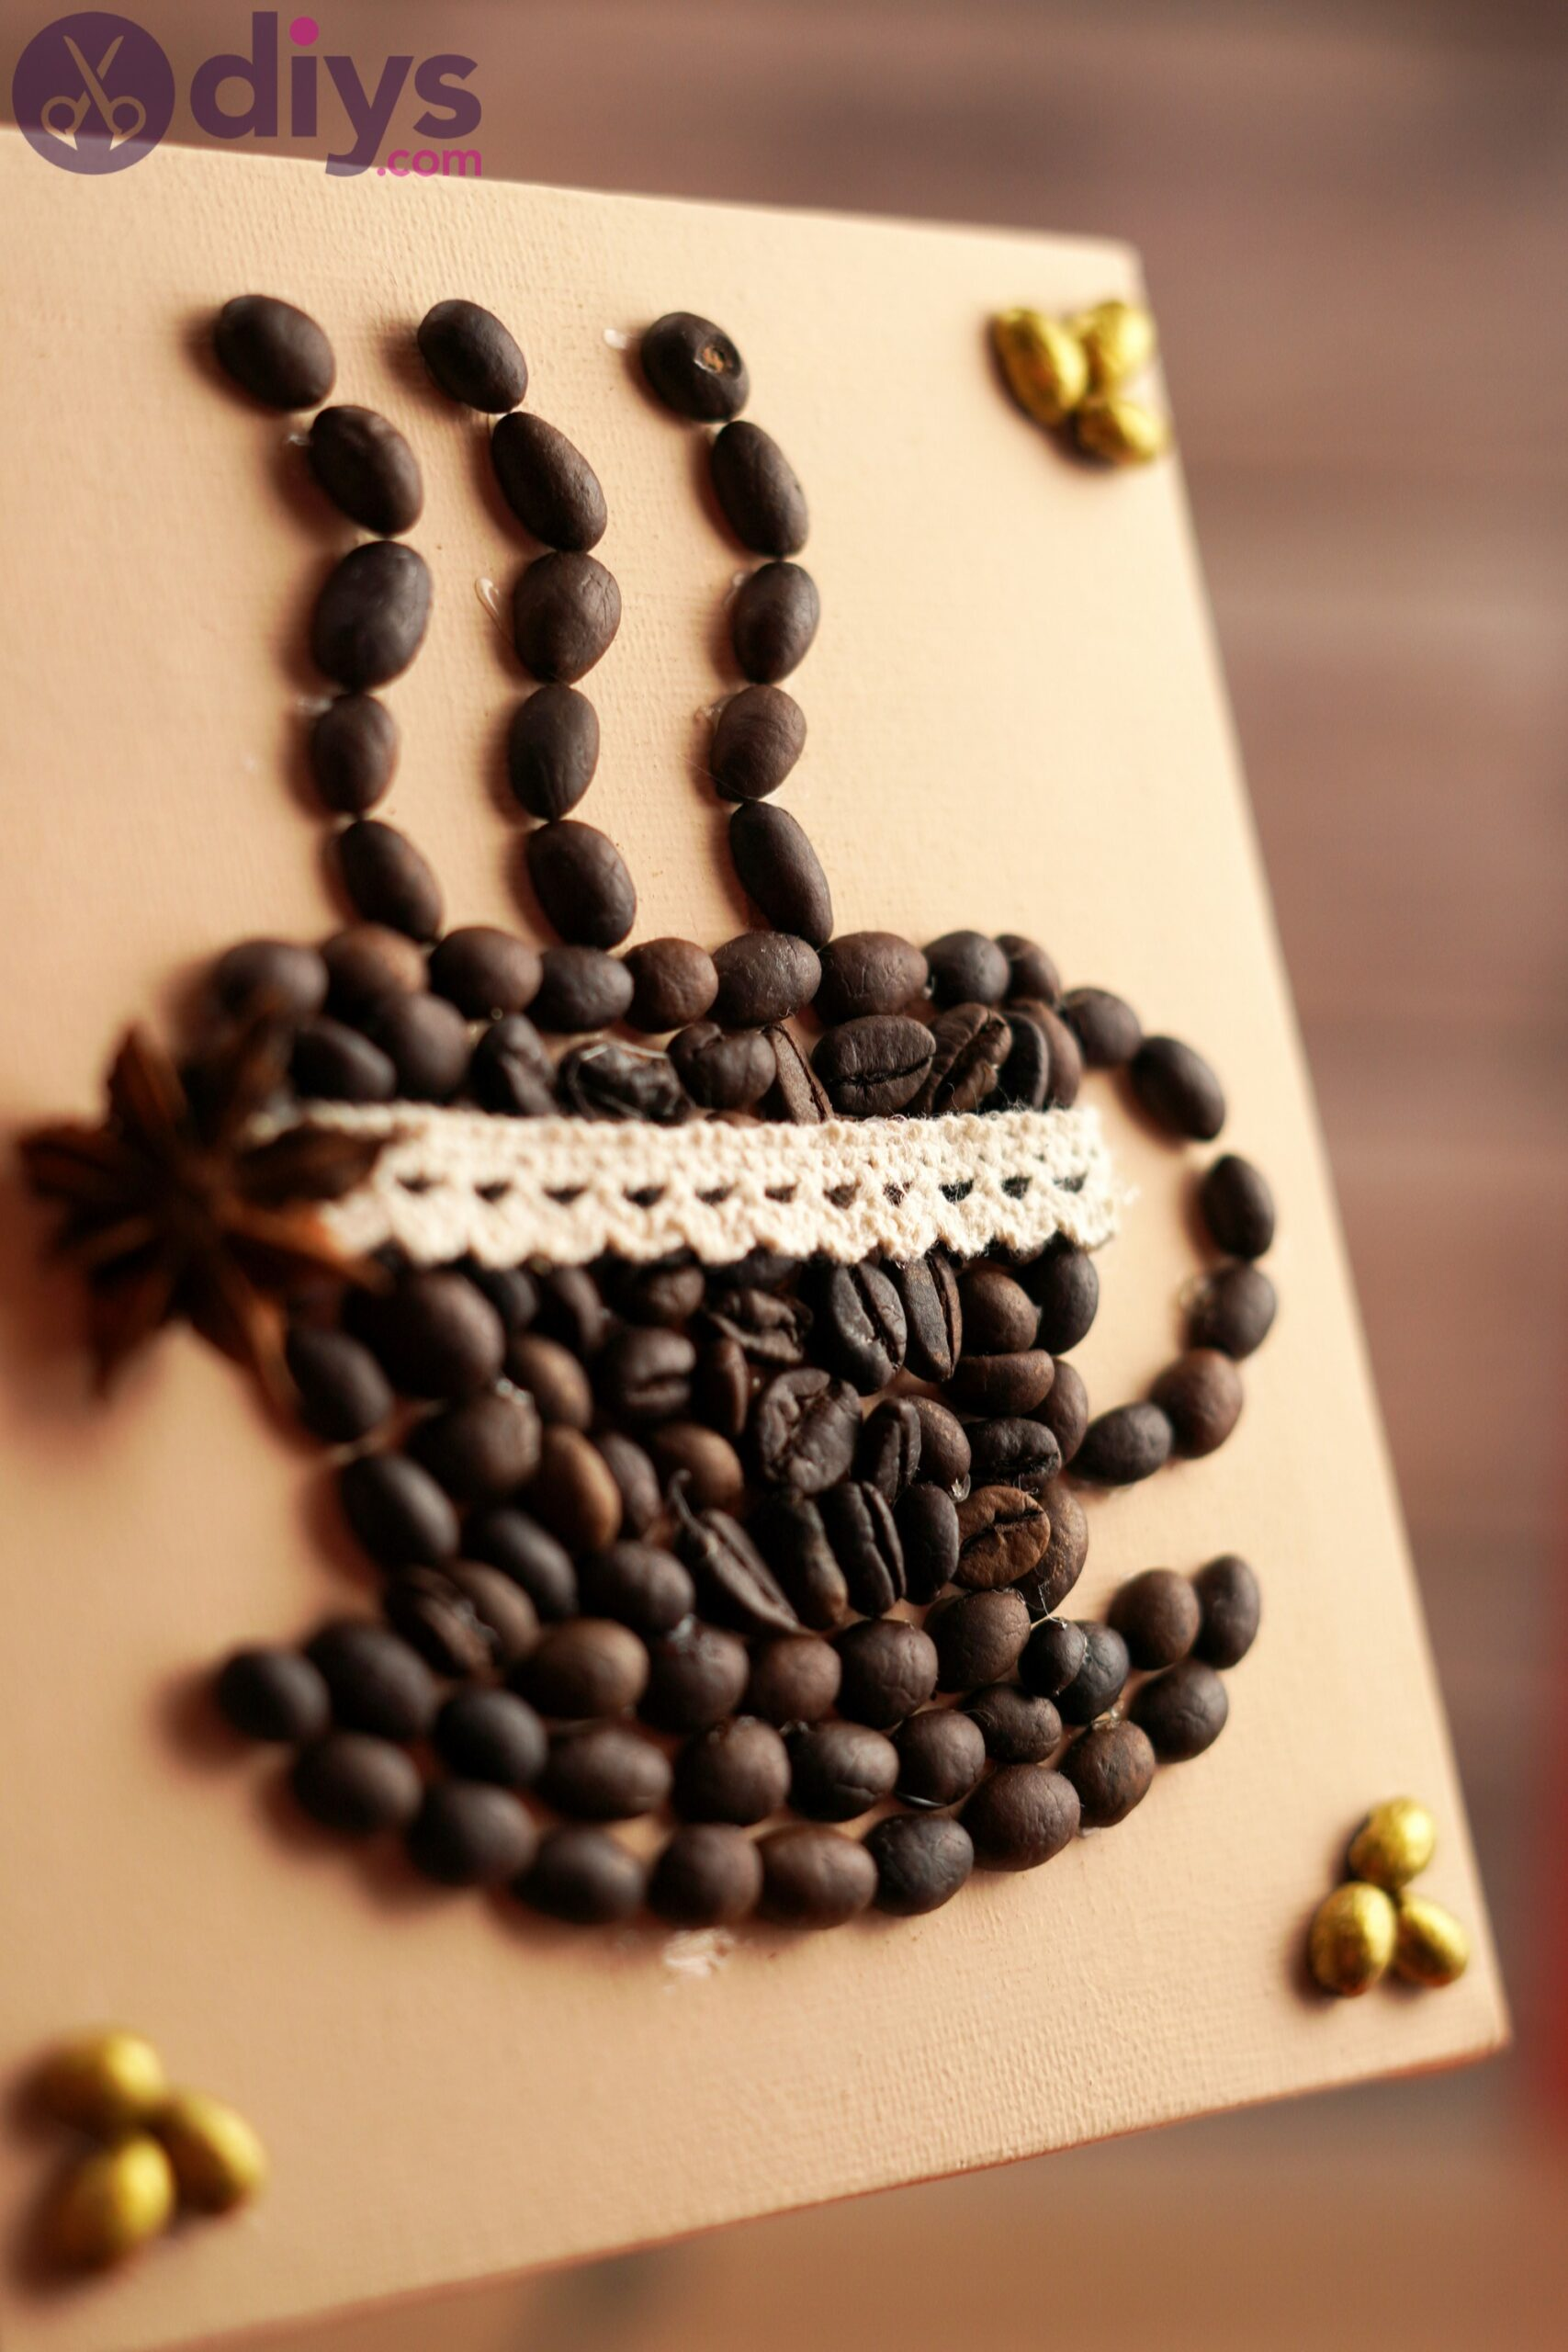 Coffee beans art photos (8)